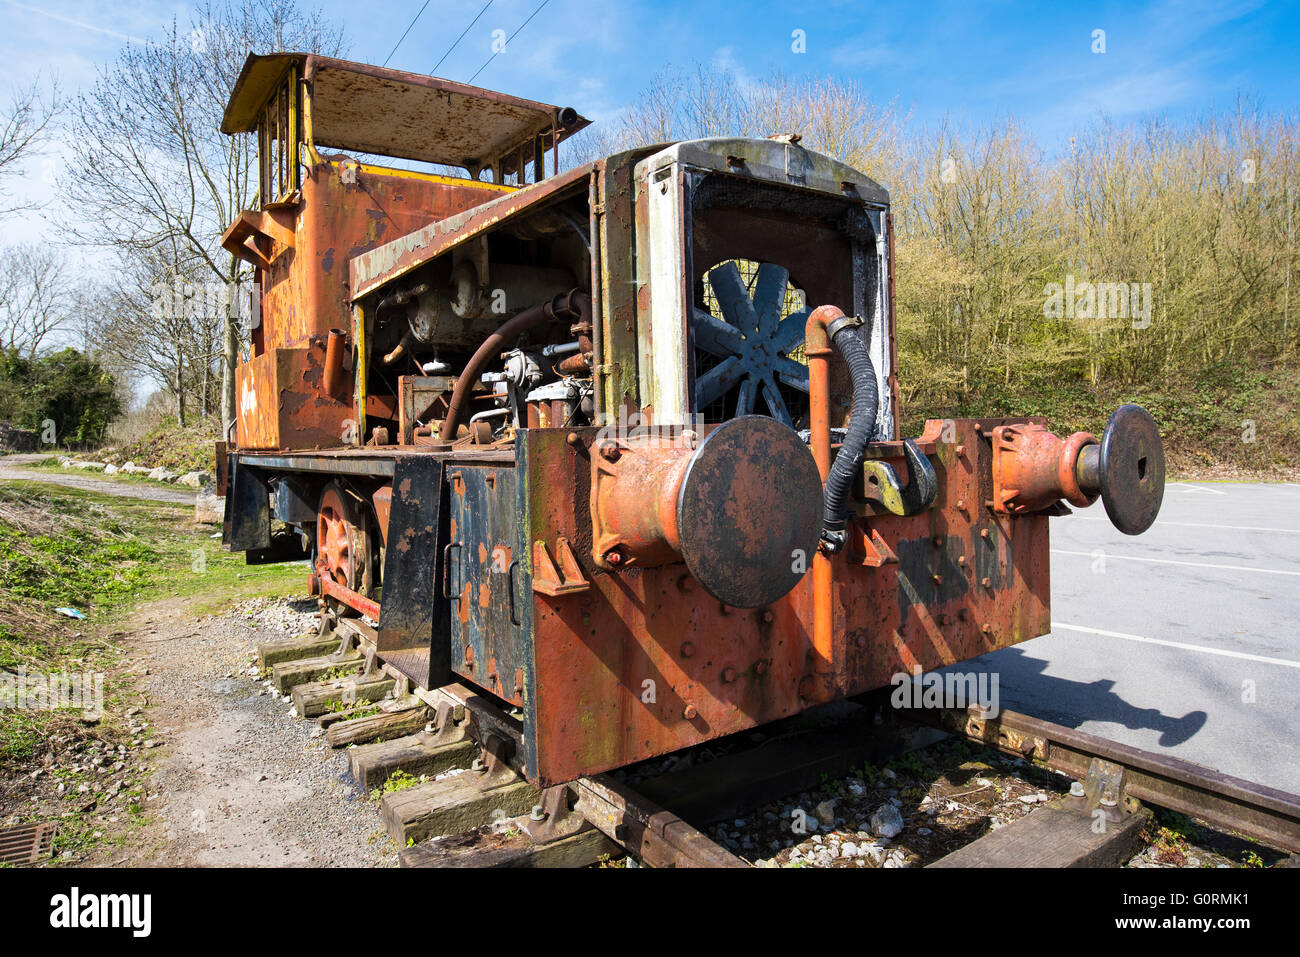 Abandoned Shunter - Stock Image